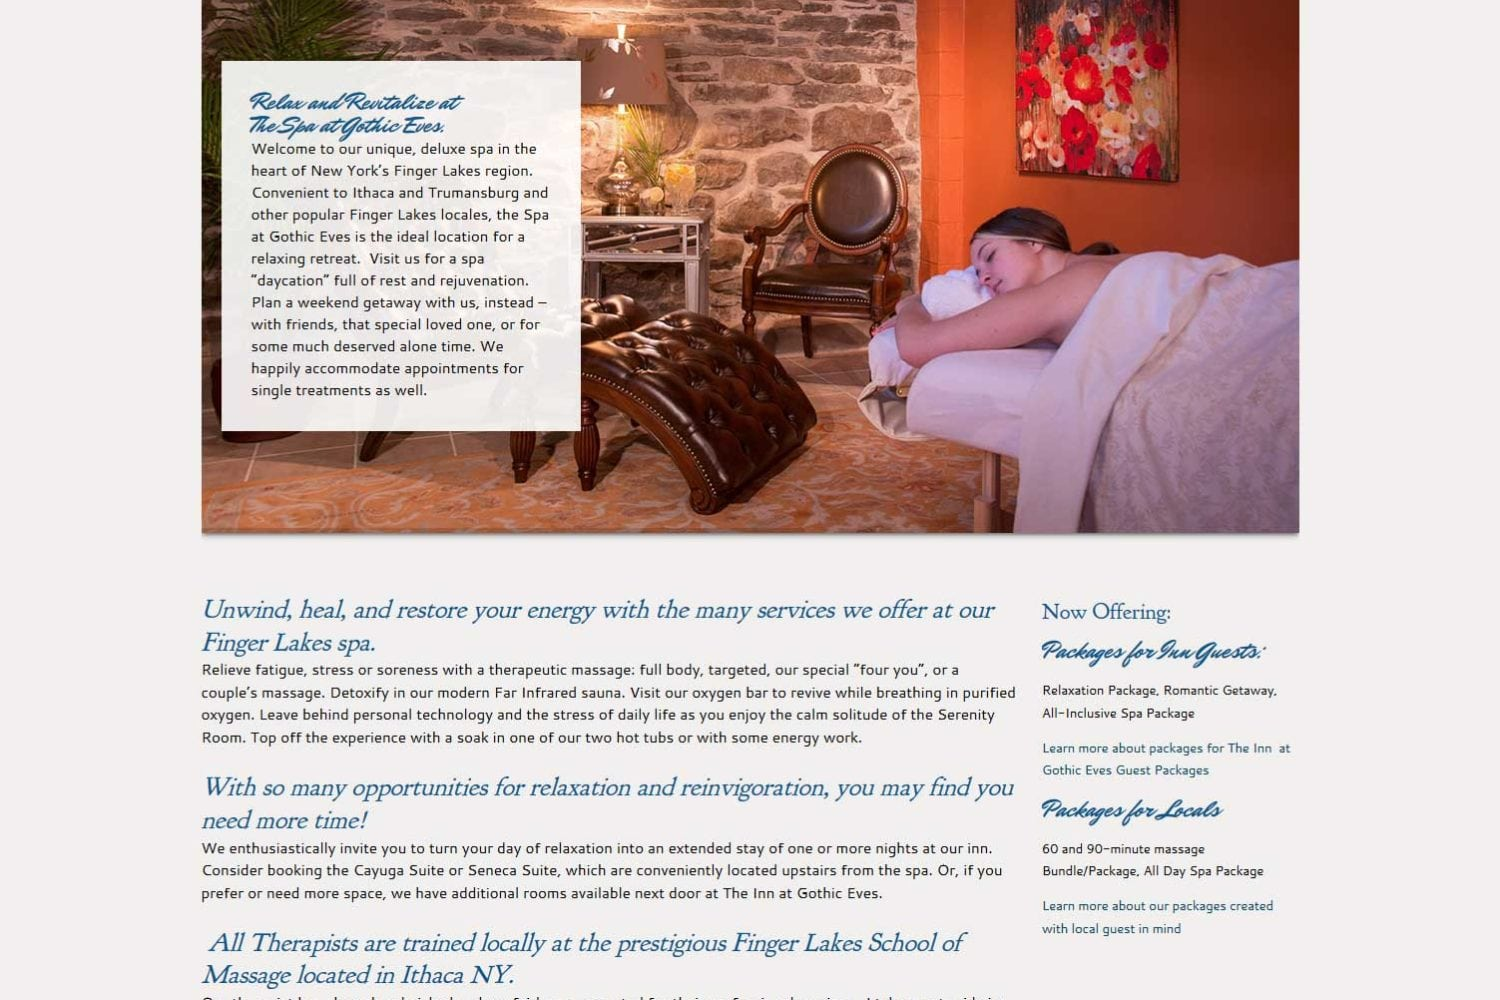 Spa Website | Spa at Gothic Eves | Massage and Spa Services in Trumansburg, NY